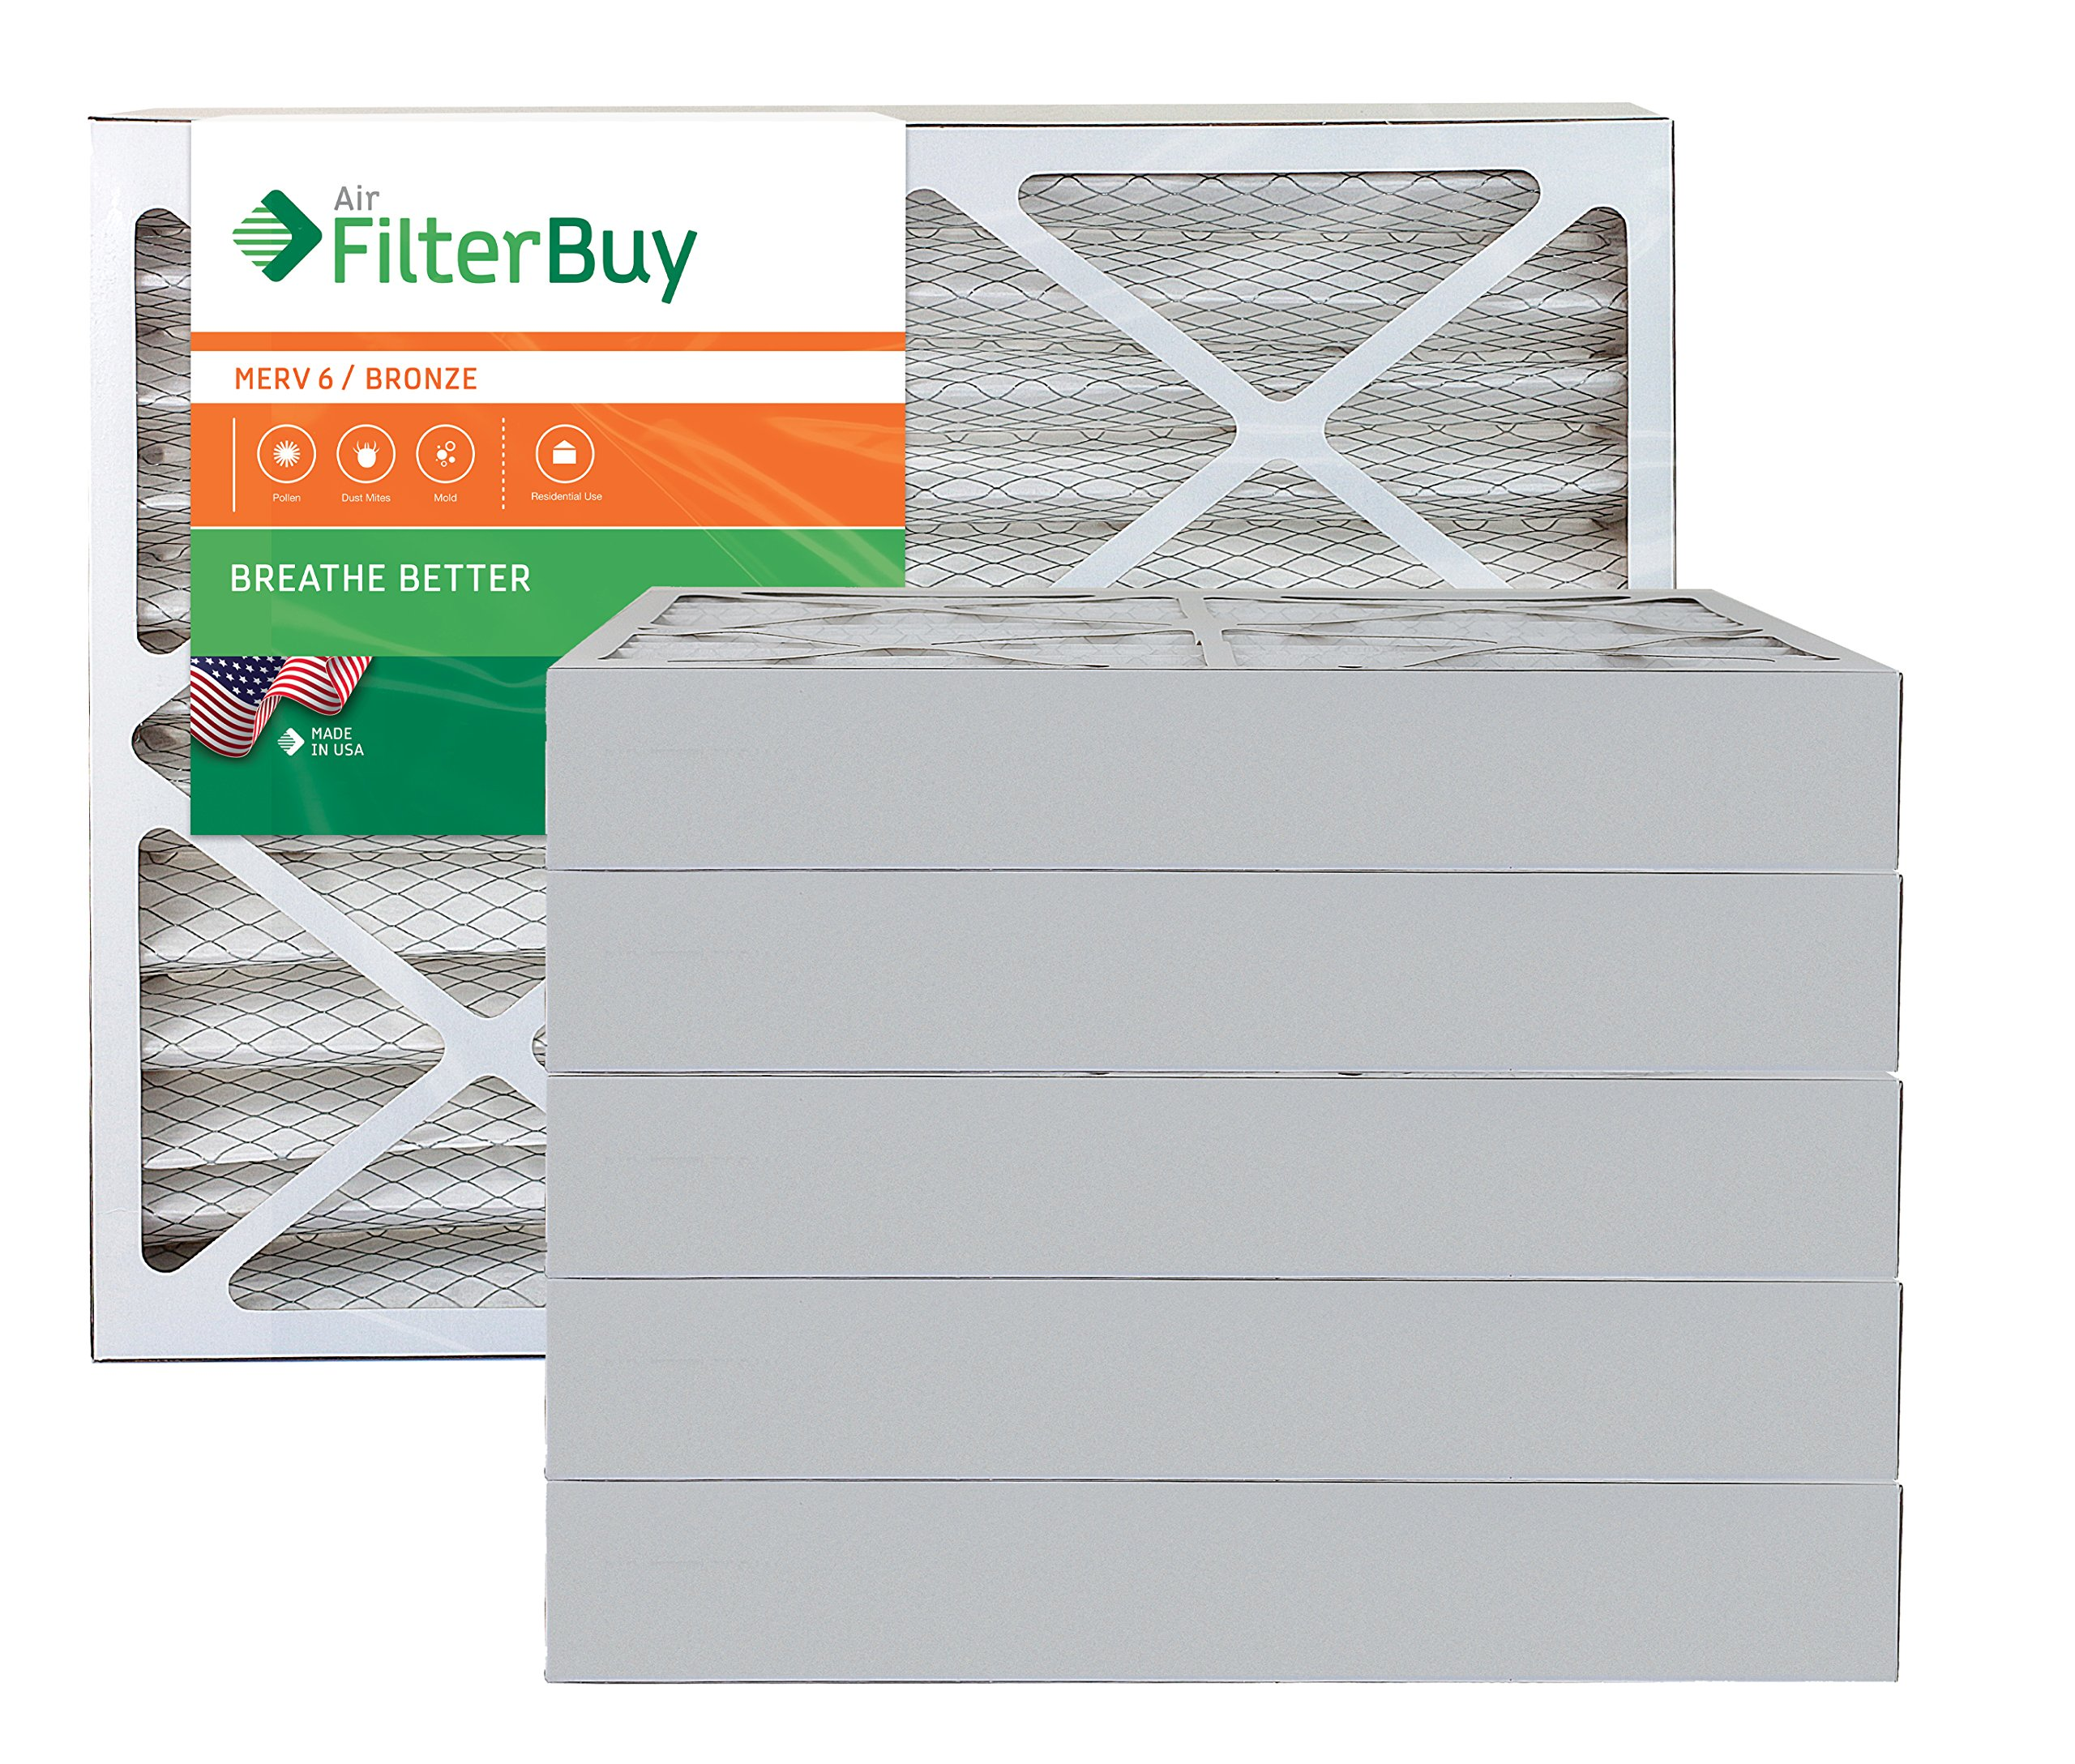 AFB Bronze MERV 6 20x23x4 Pleated AC Furnace Air Filter. Pack of 6 Filters. 100% produced in the USA.